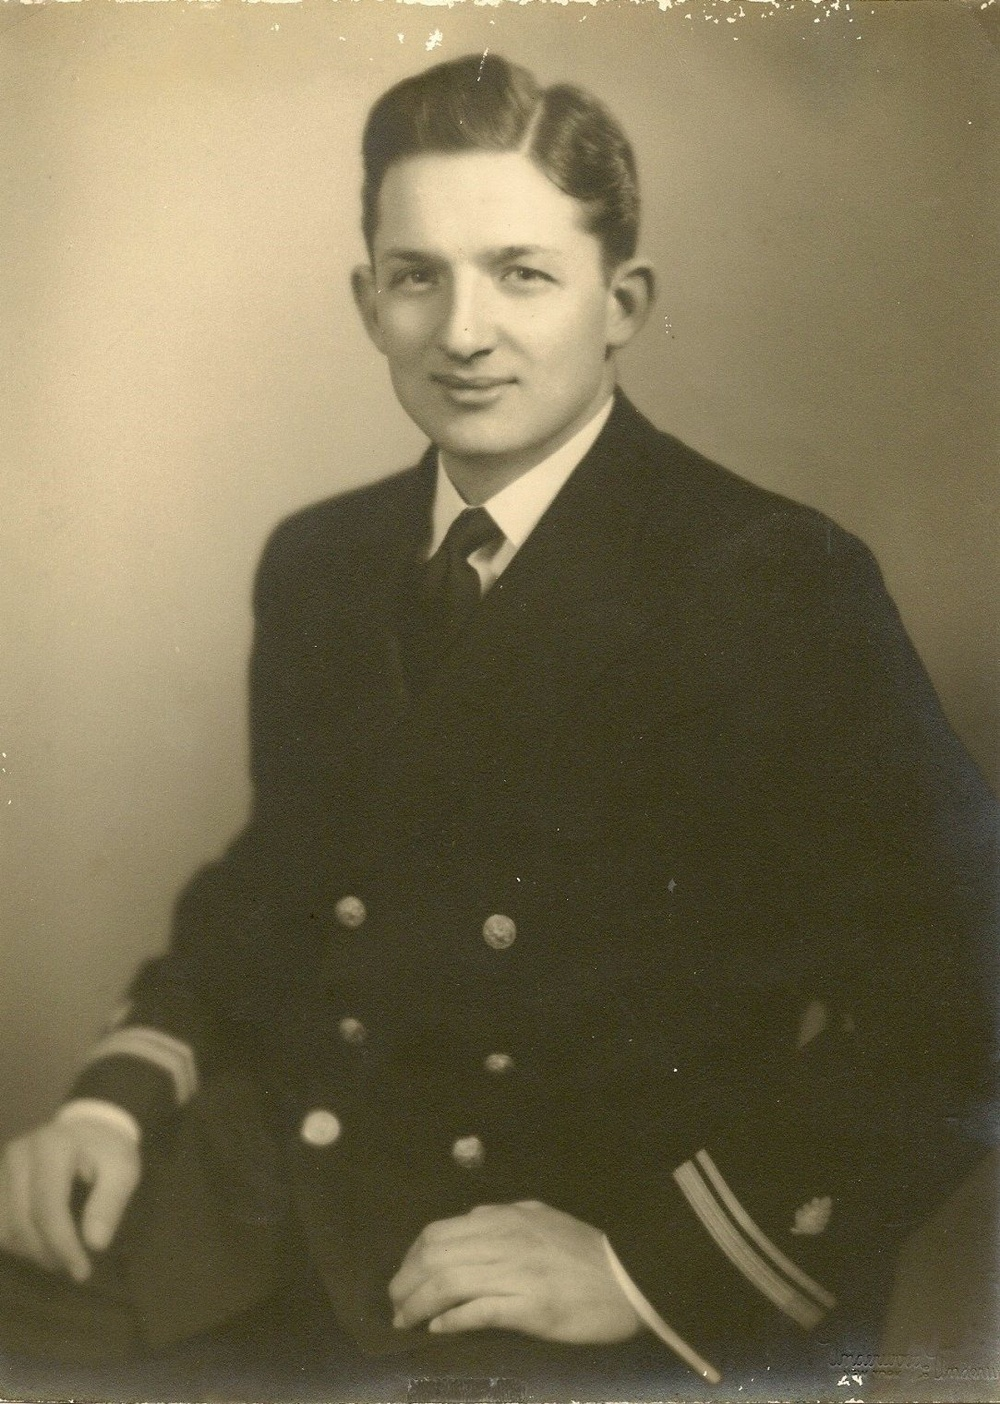 101-Year Old Physician Looks Back on Navy Medical Career